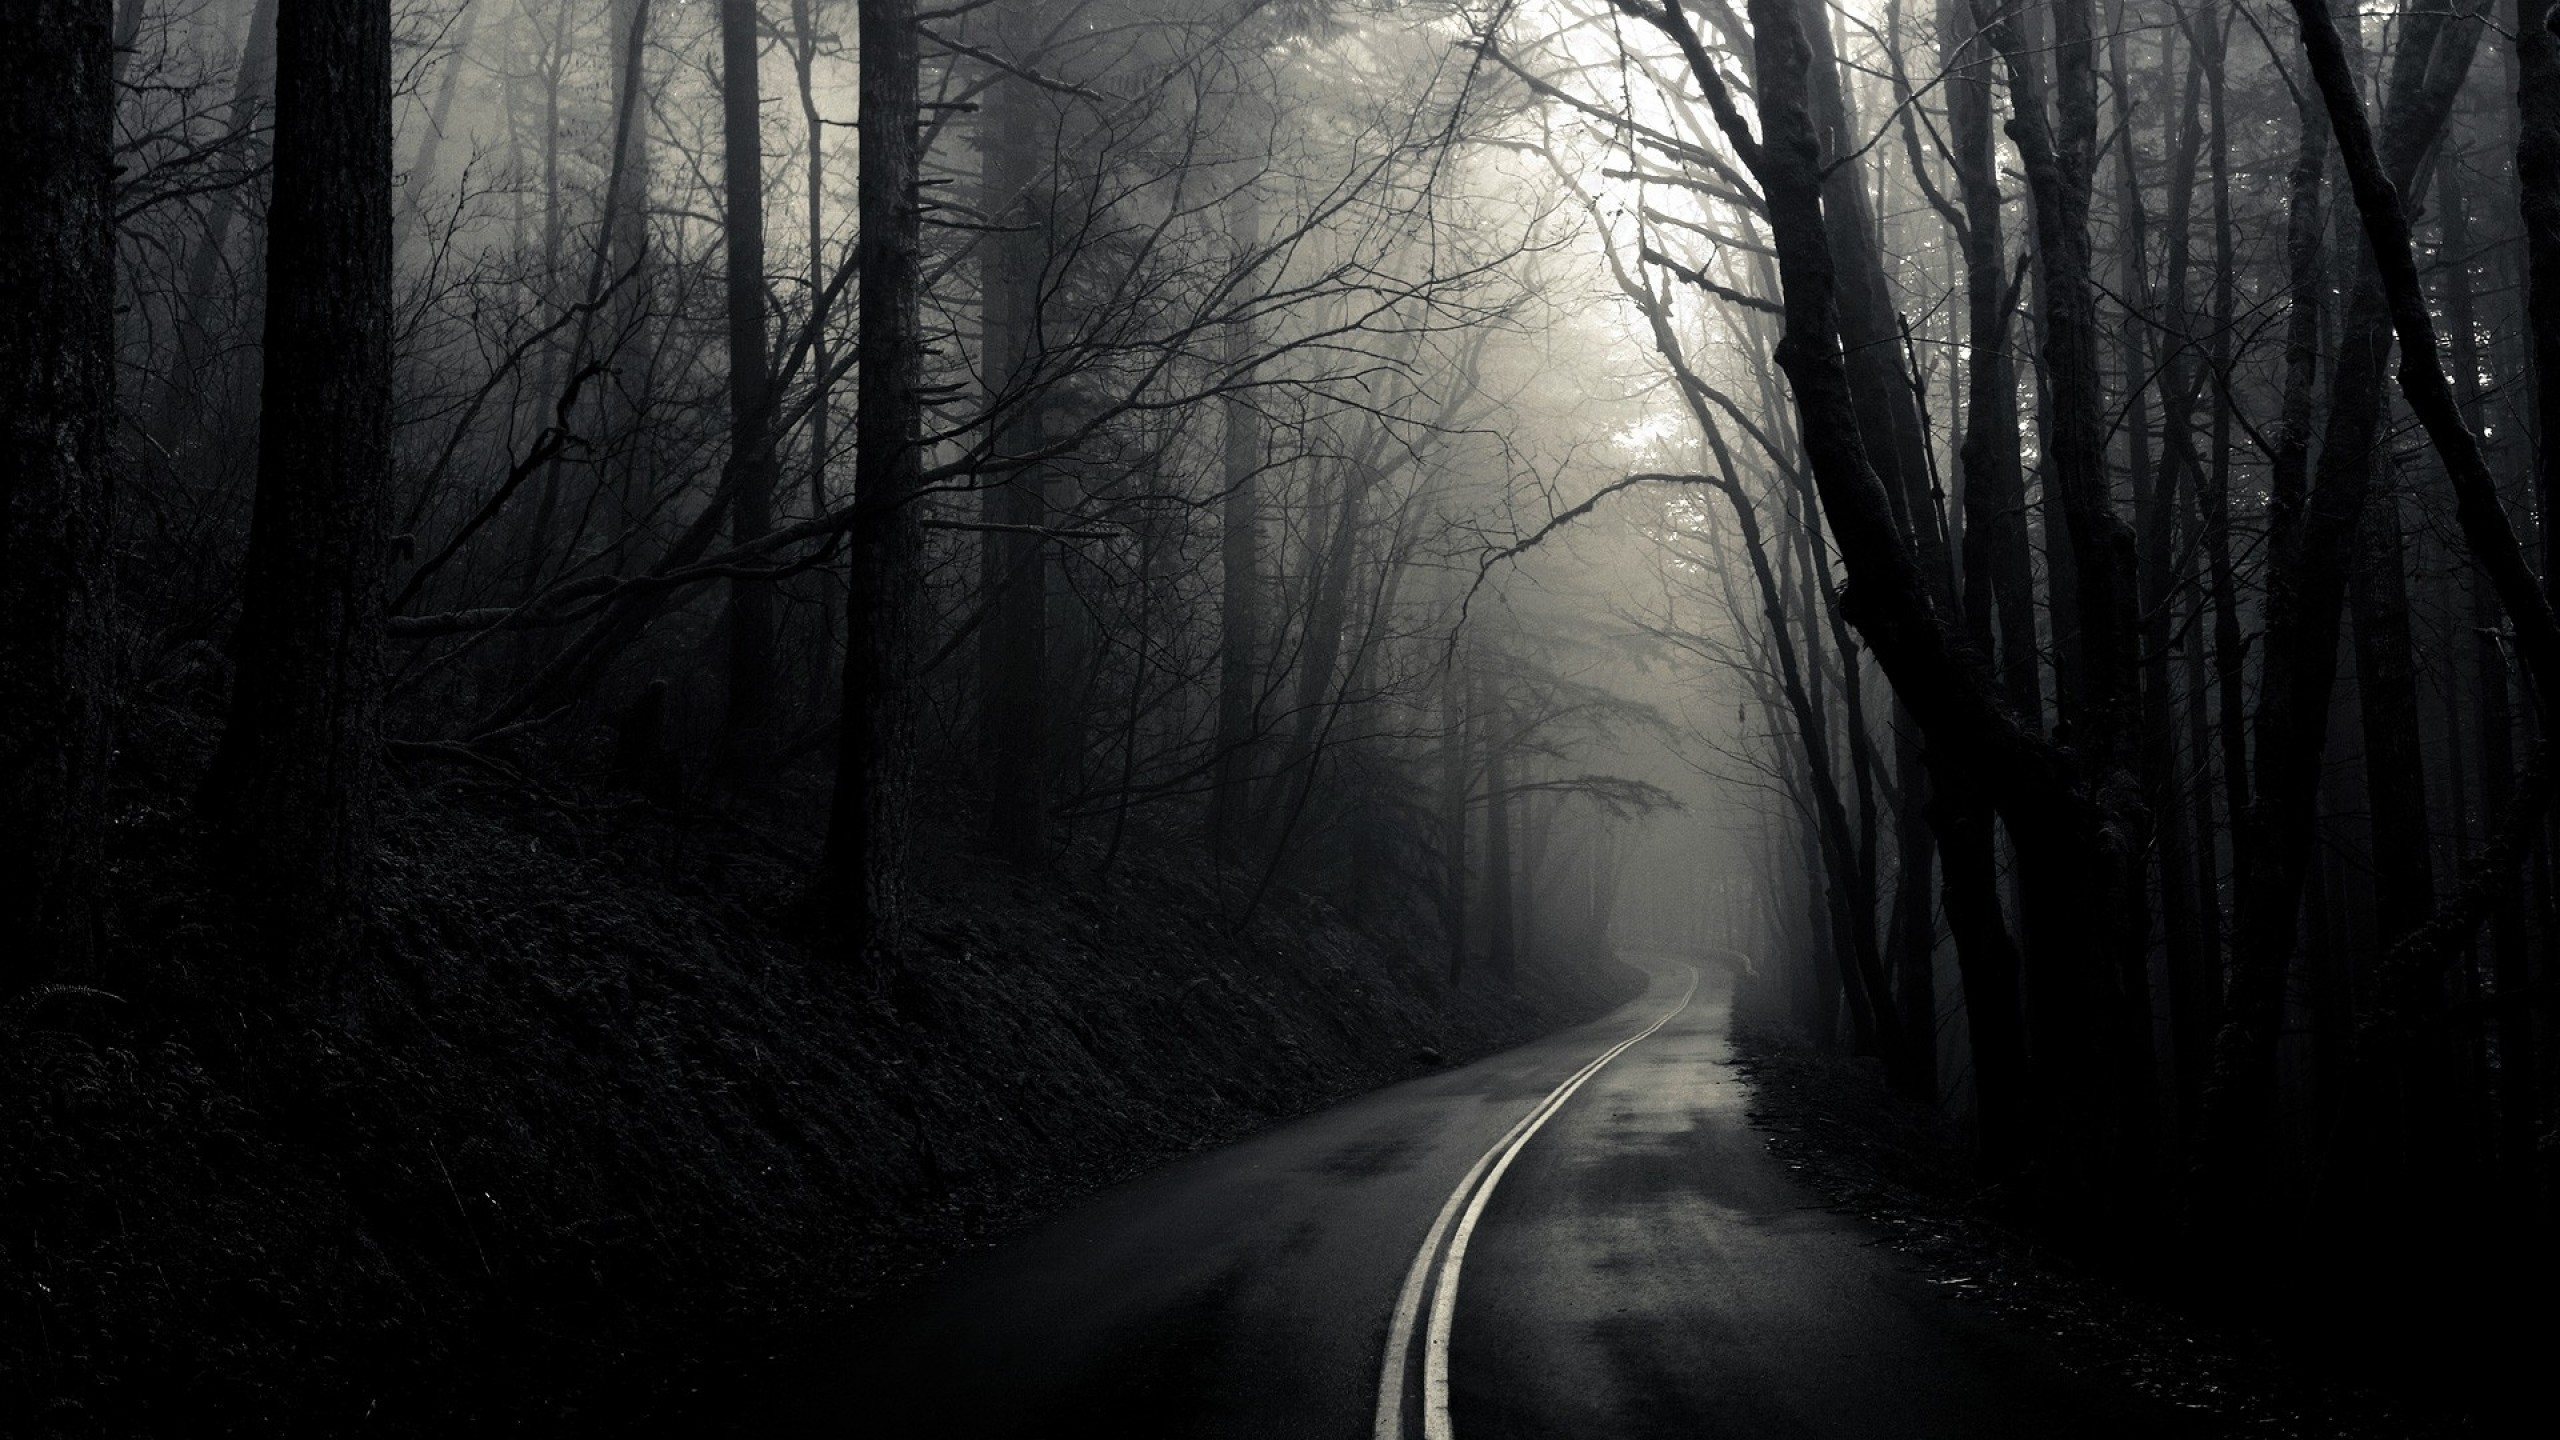 Dark Depression Wallpapers 59 images 2560x1440